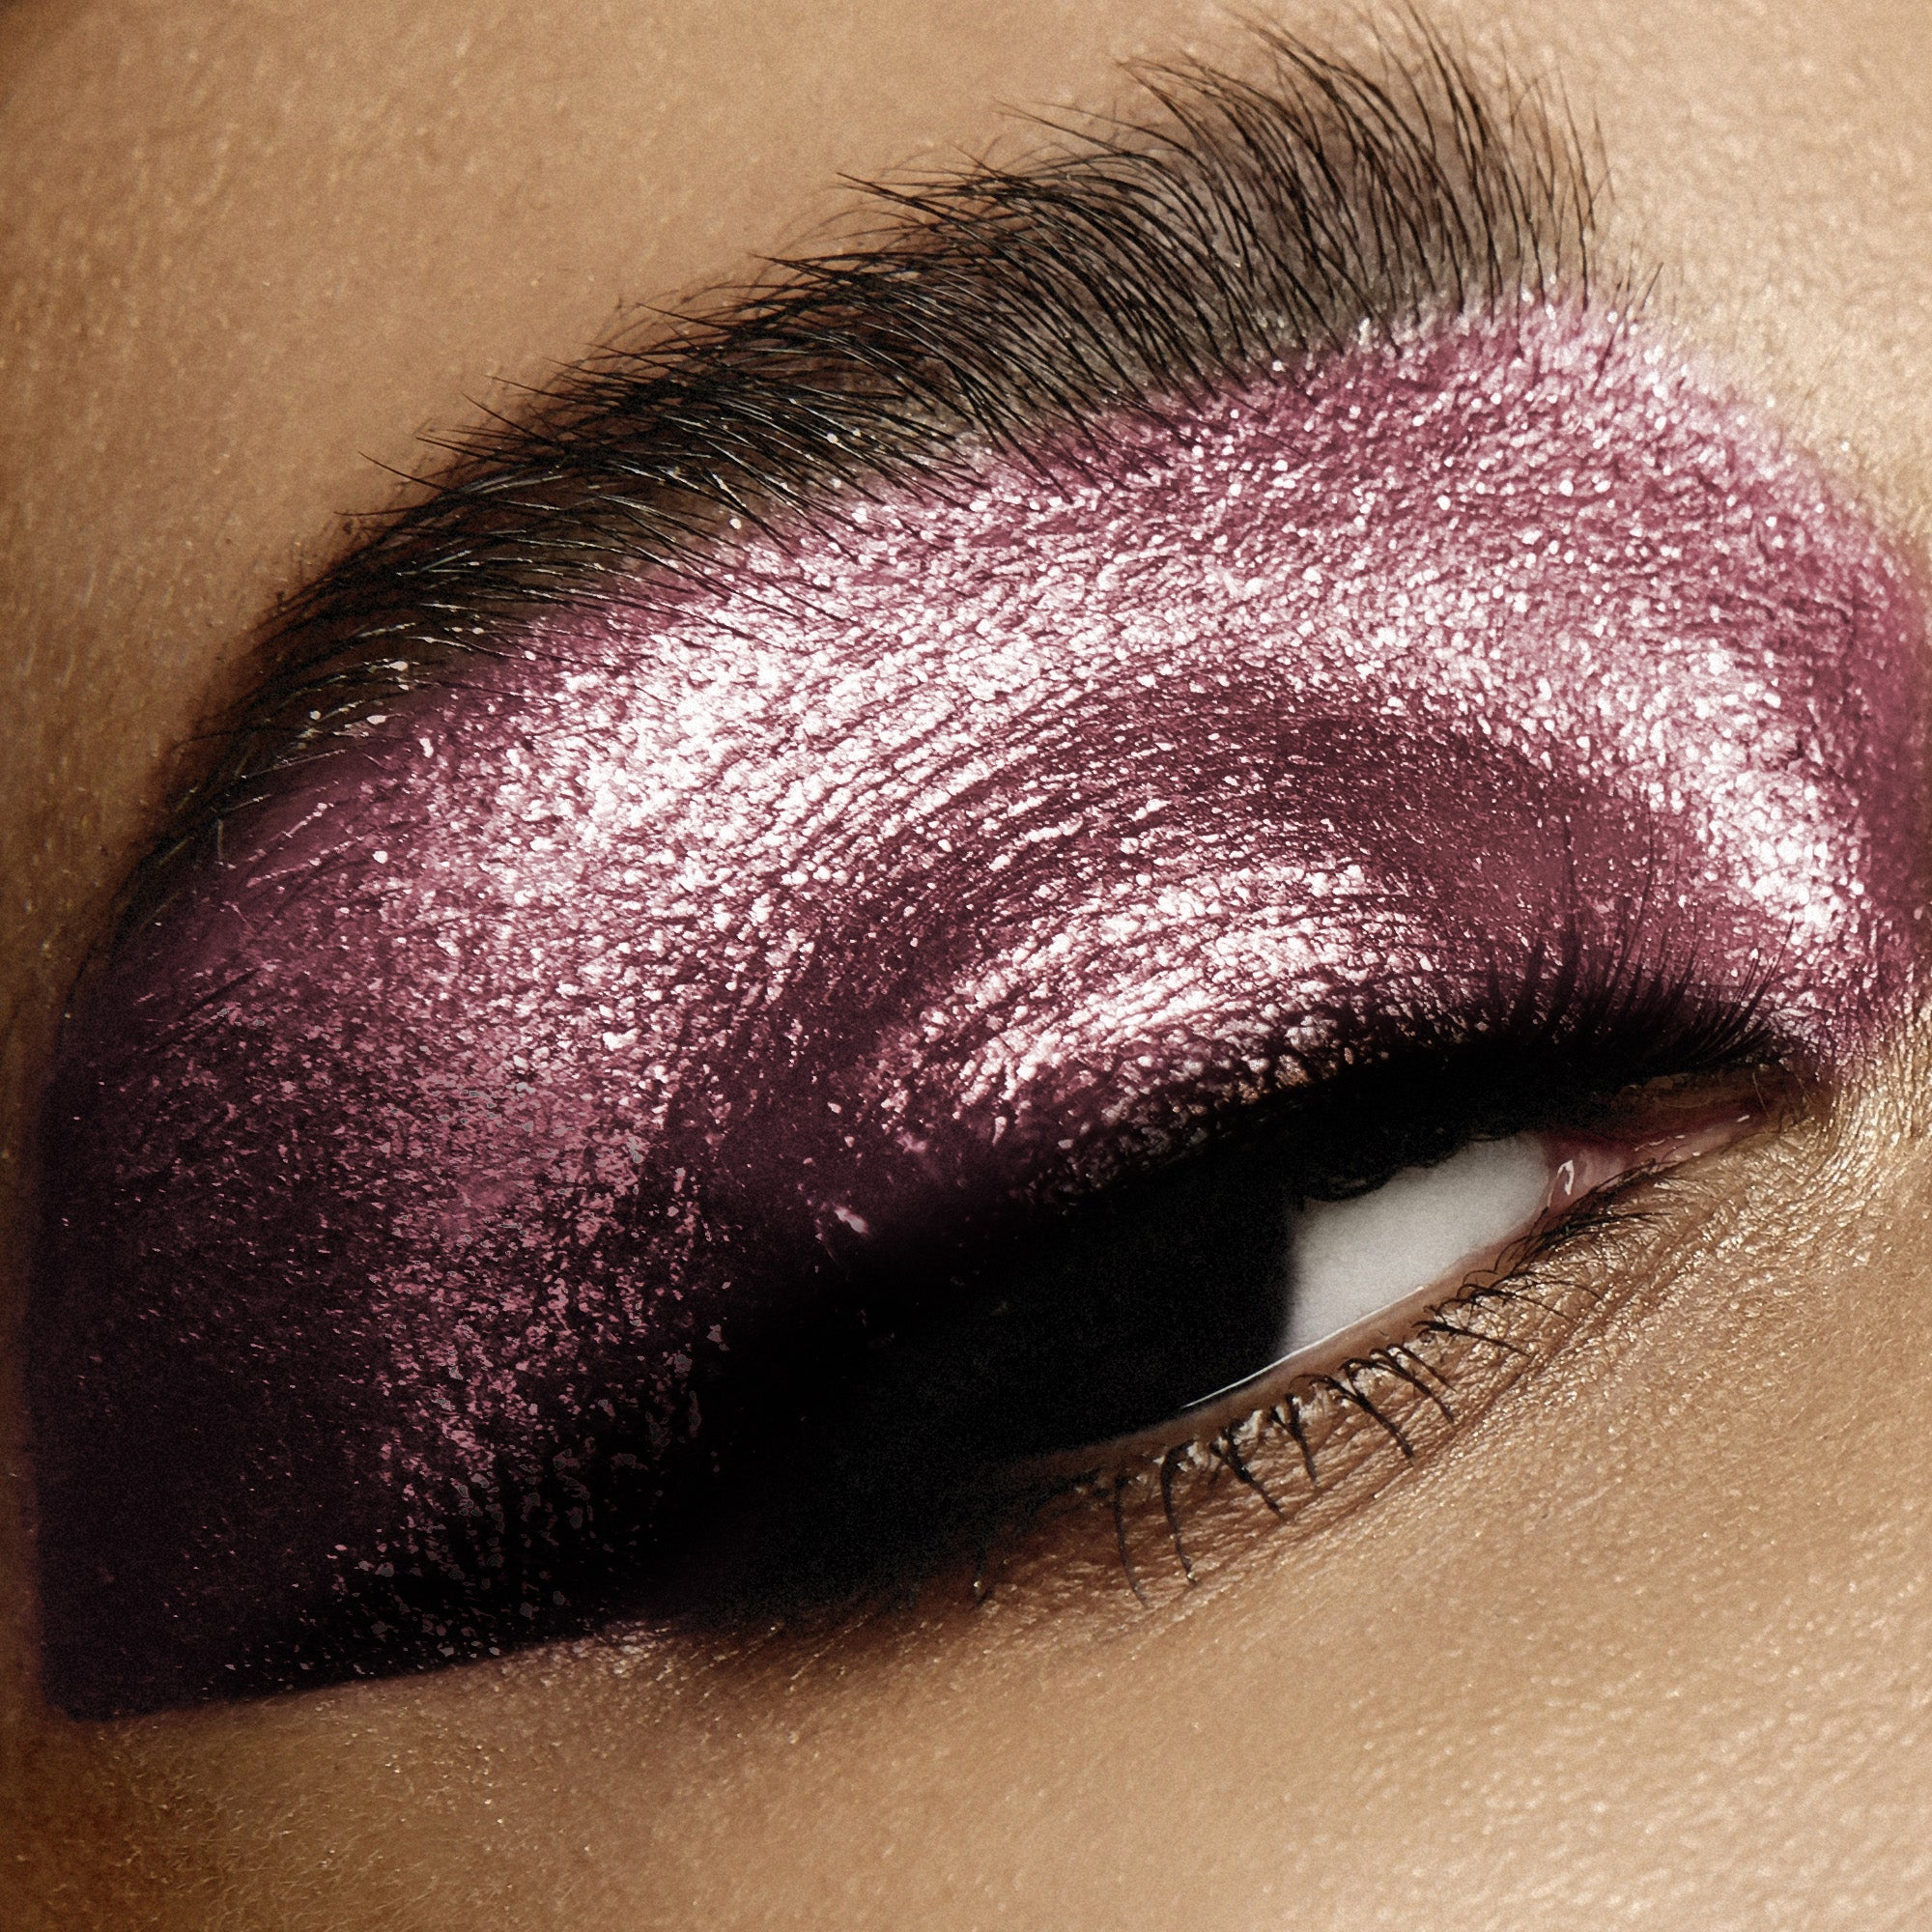 EYE/DAZZLE - The Liquid Metallic Eyeshadow